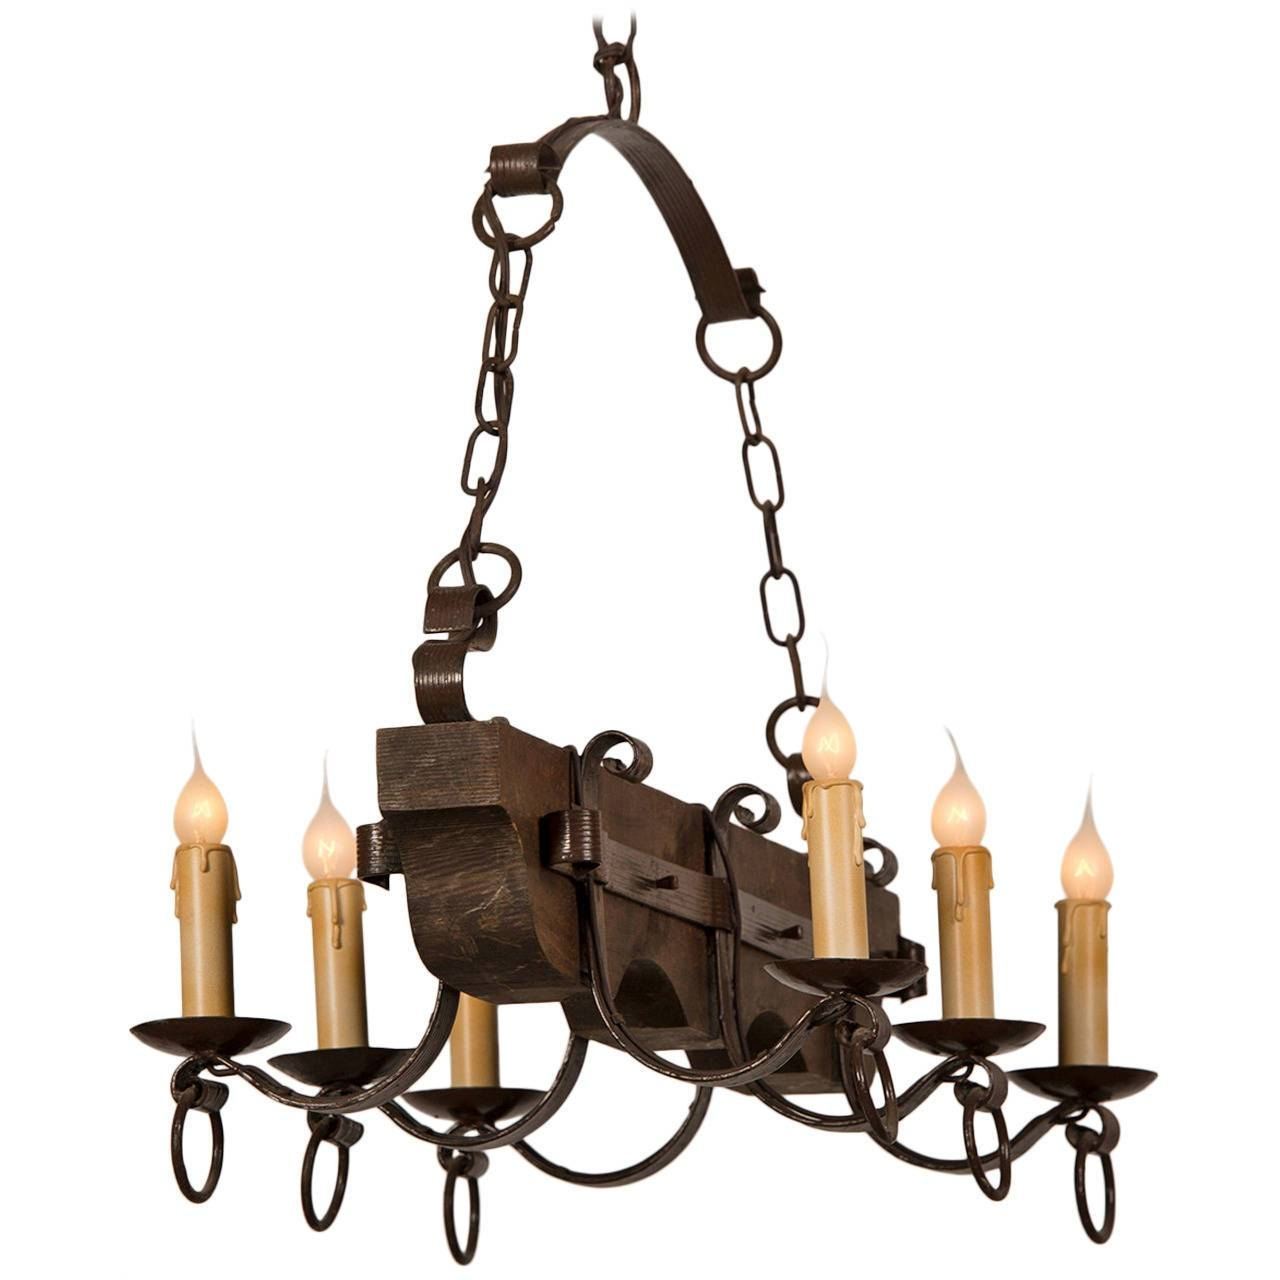 Black Wrought Iron Chandelier Lighting | Roselawnlutheran for Wrought Iron Pendant Lights for Kitchen (Image 5 of 15)